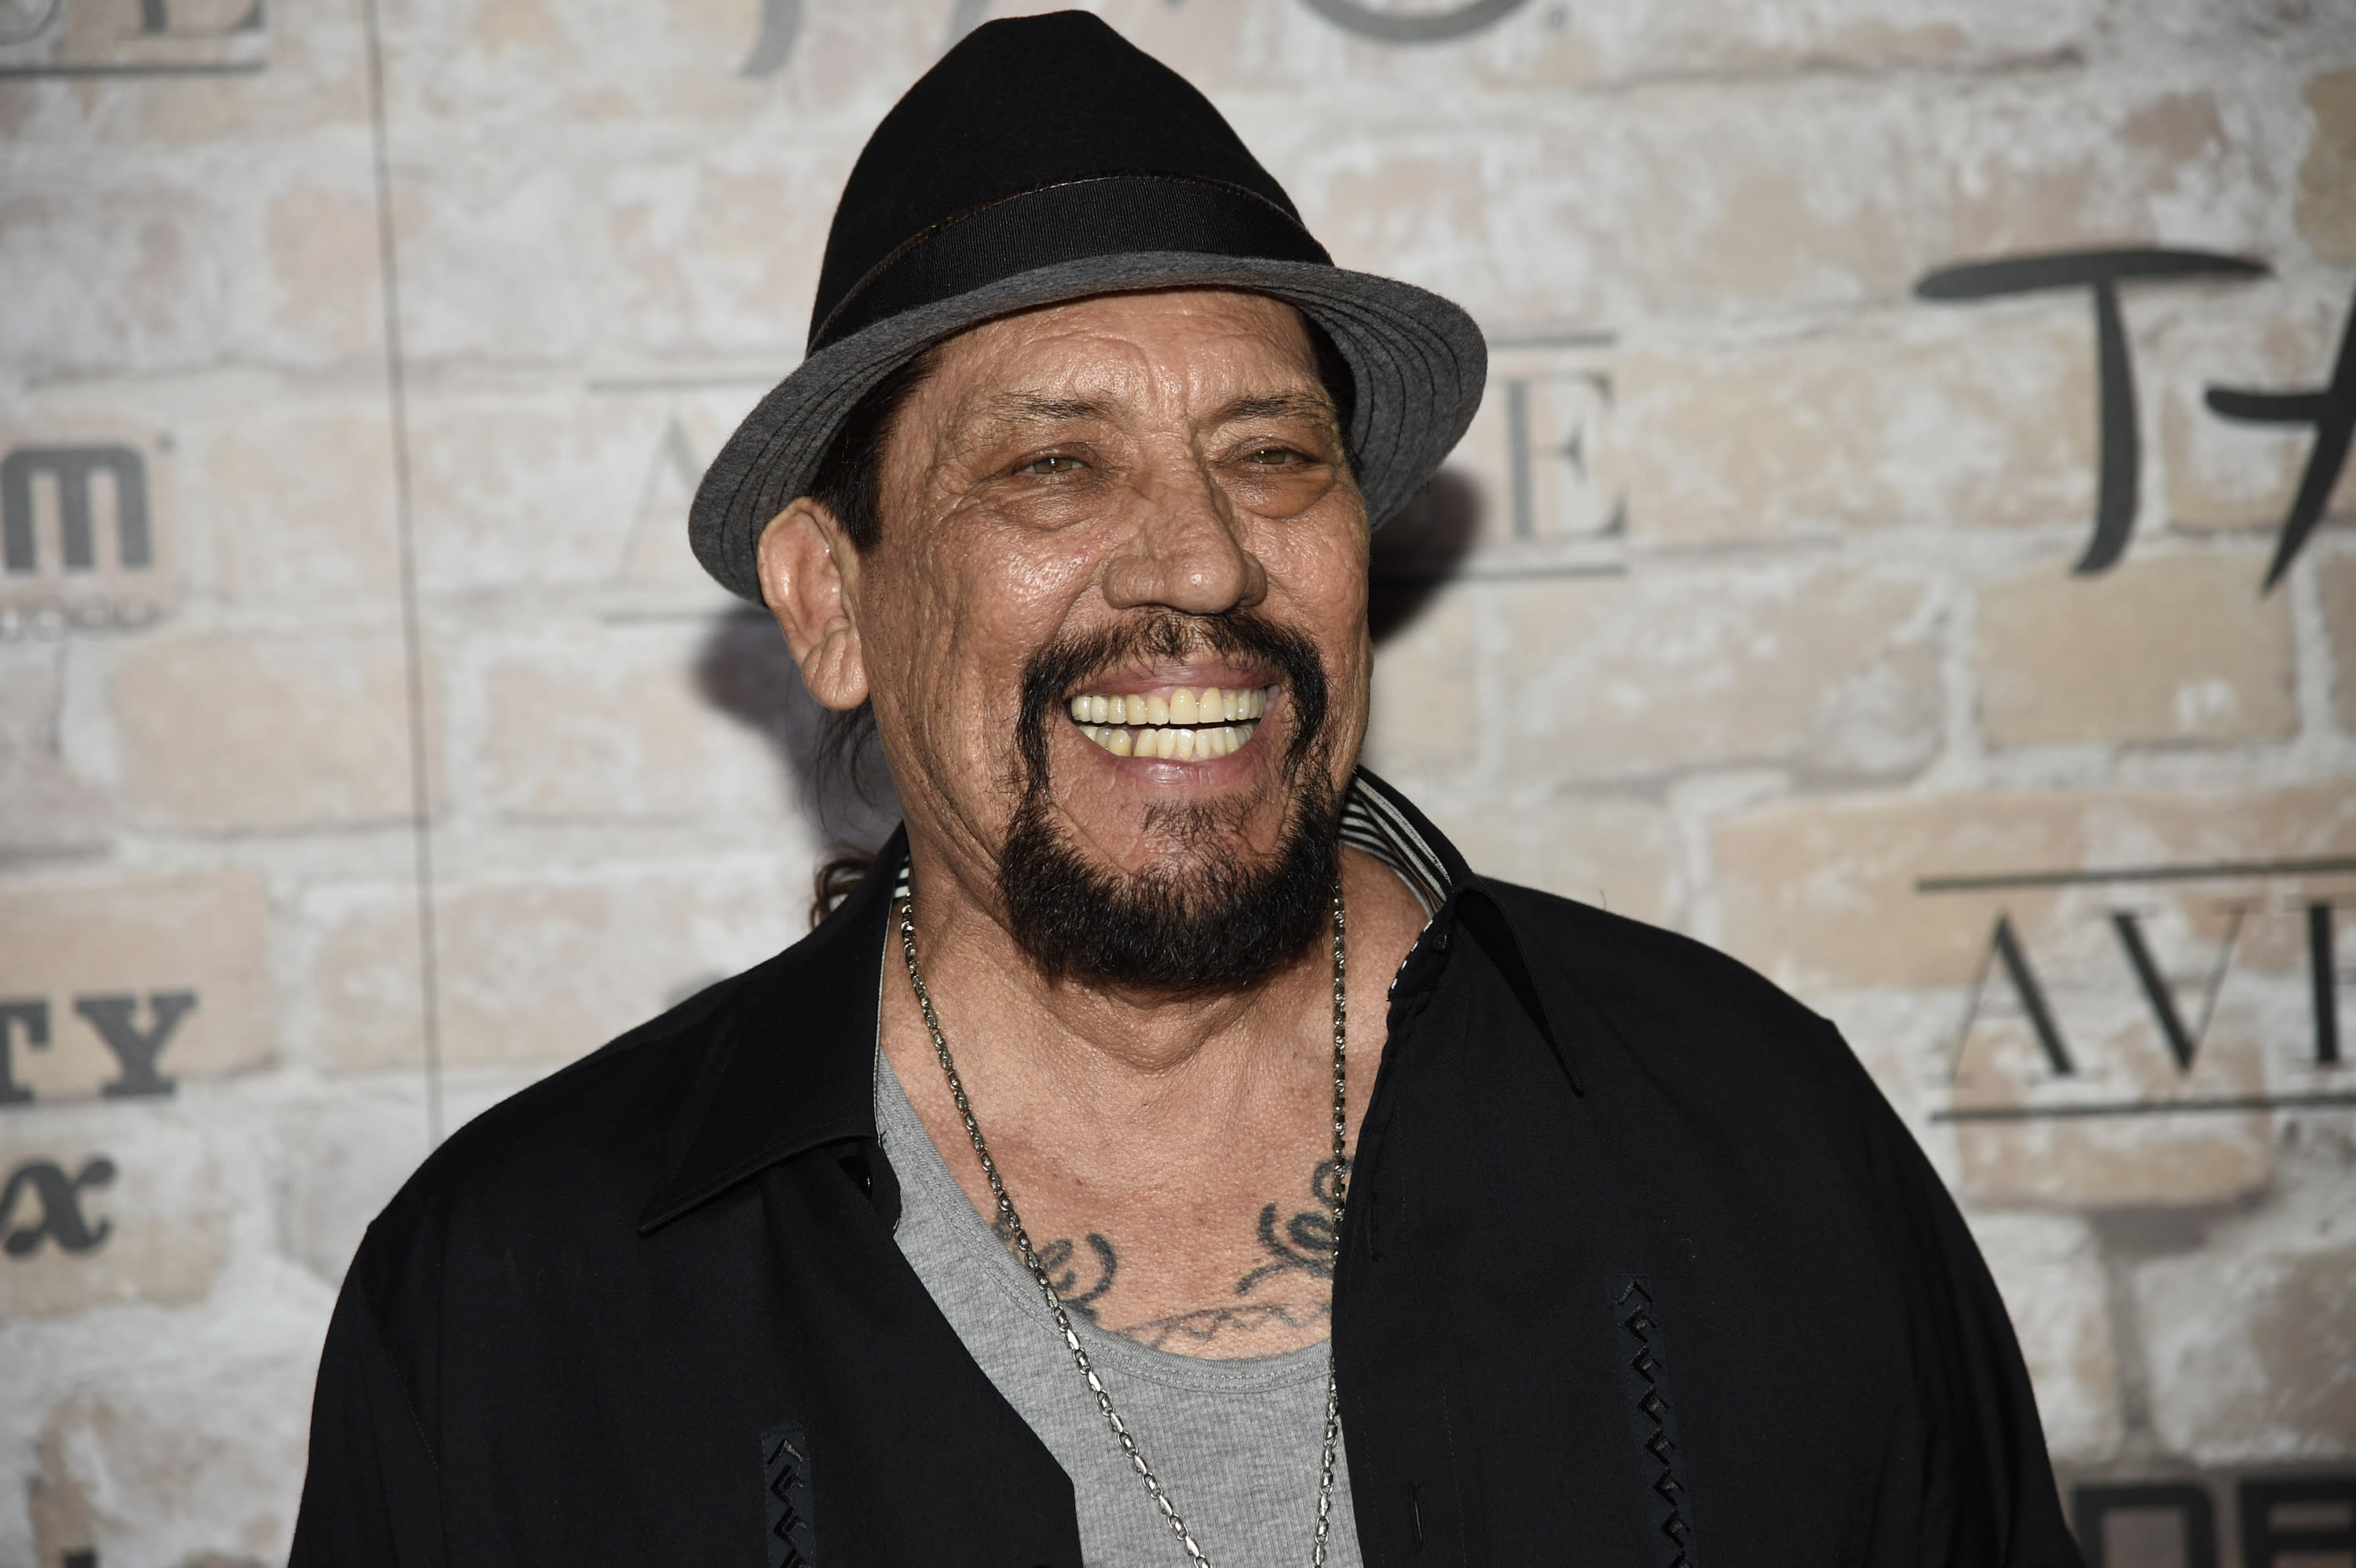 Danny Trejo arrives at the TAO, Beauty and Essex, Avenue and Luchini Los Angeles grand opening on Thursday, March 16, 2017. (Photo by Chris Pizzello/Invision/AP)